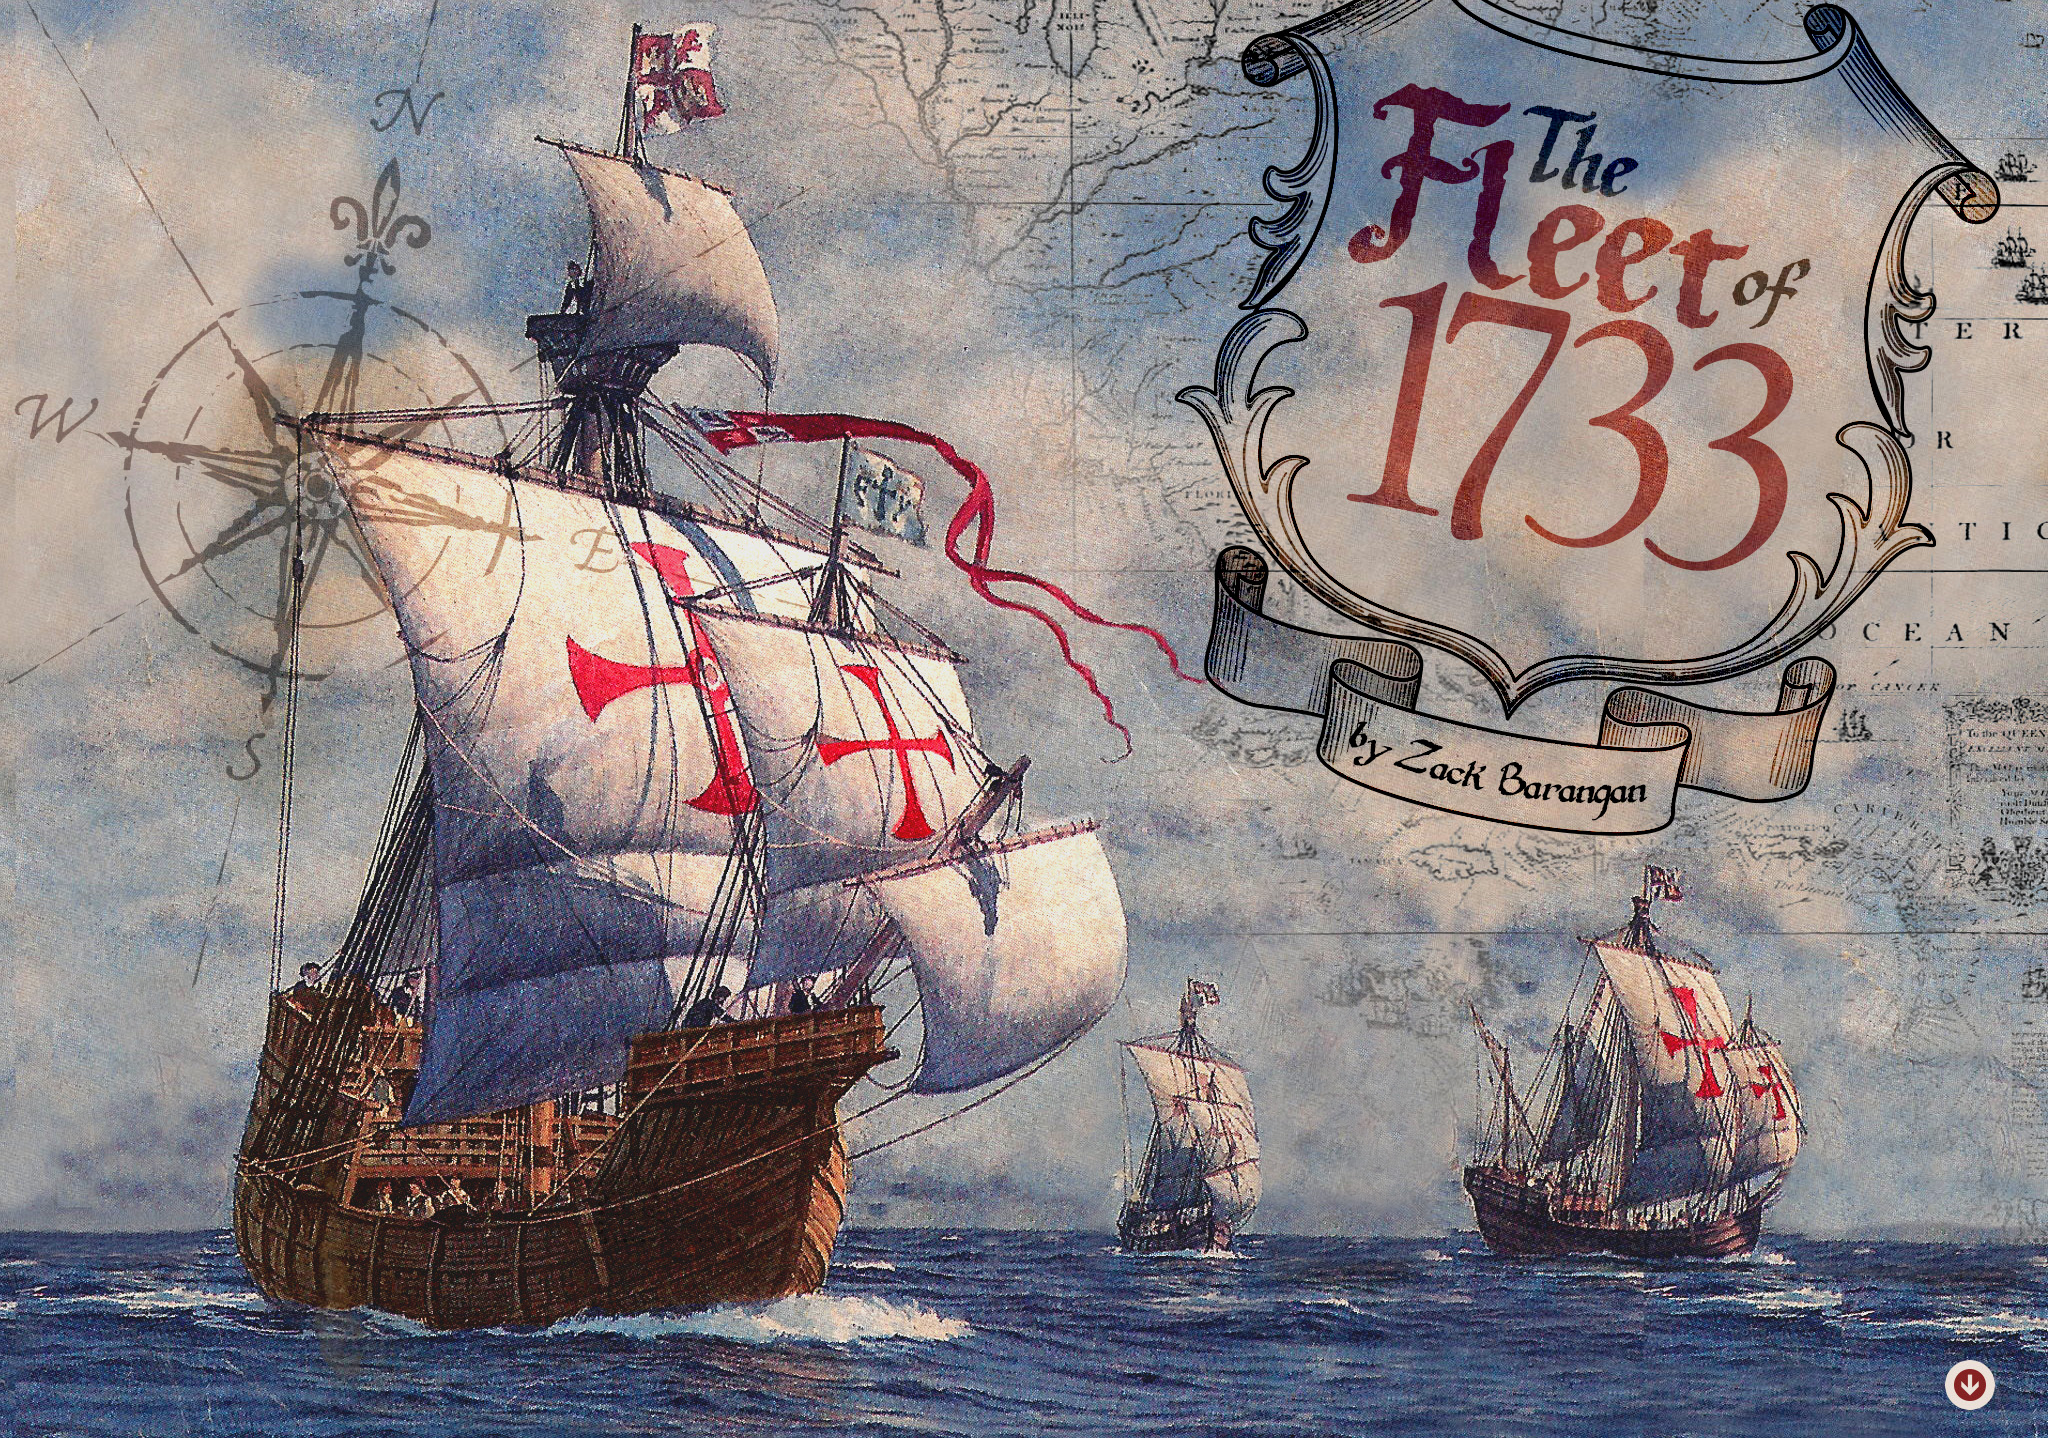 The Fleet of 1733 - by Zack Barangan ...